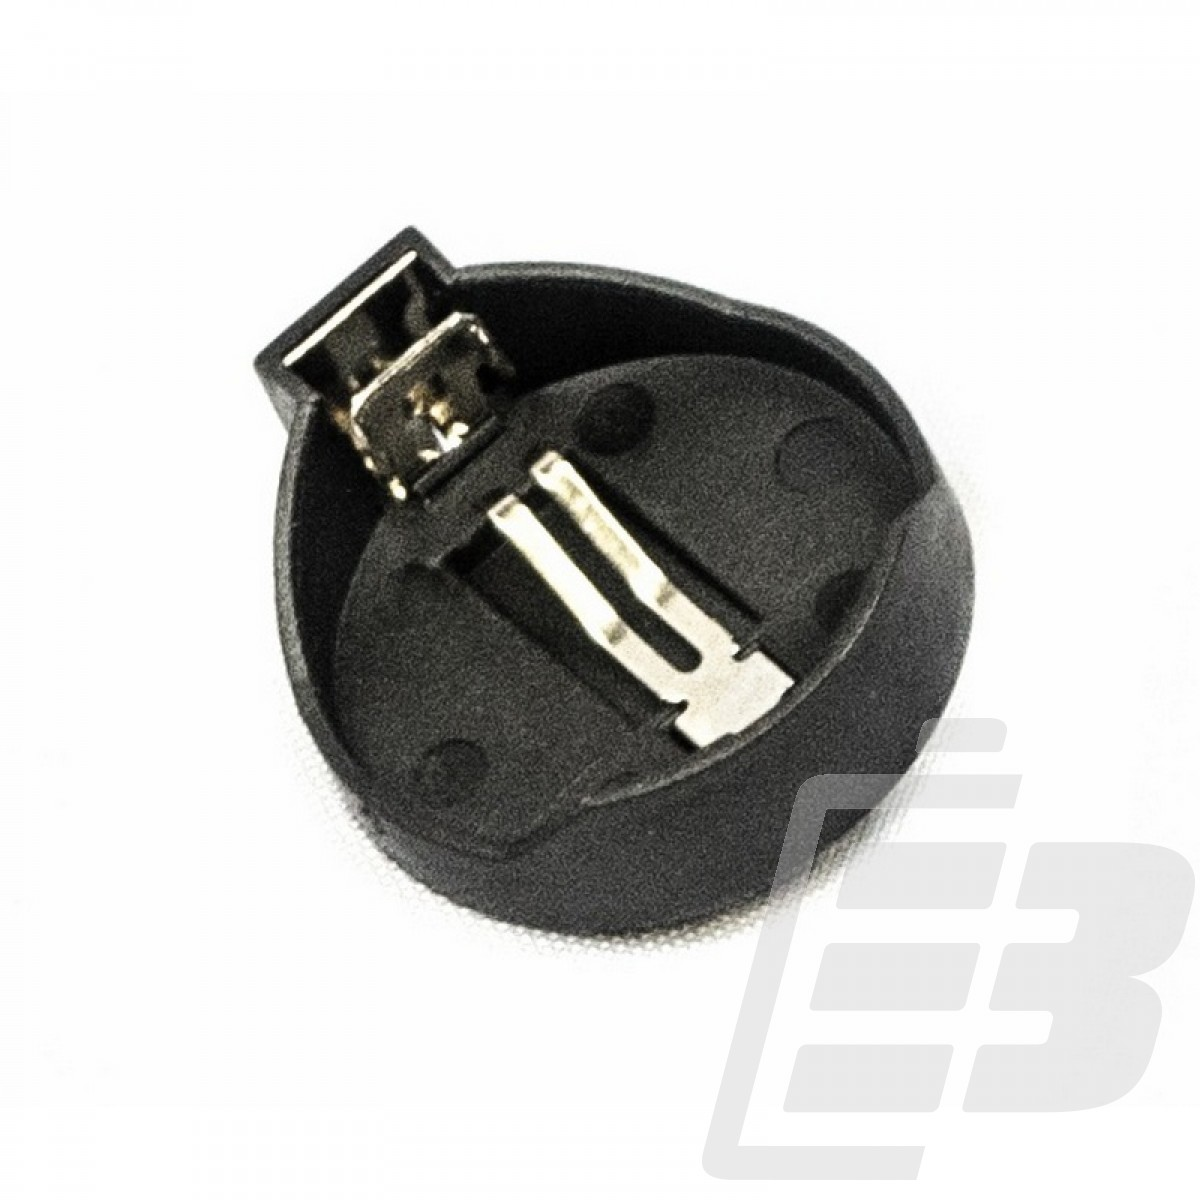 MPD Battery holder size 2032 1 cell